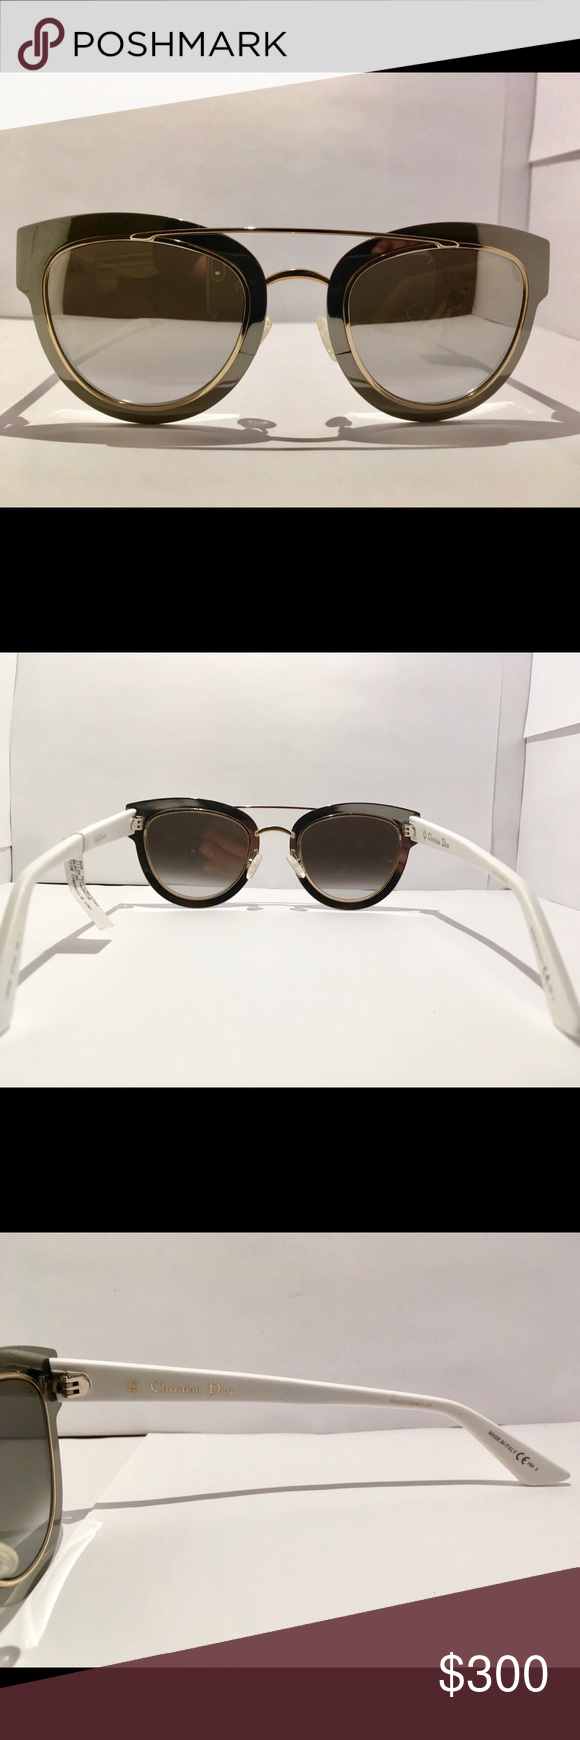 2560bde4a6 Christian Dior Chromic LMJ96 Sunglasses Brand new Christian Dior Ruthenium